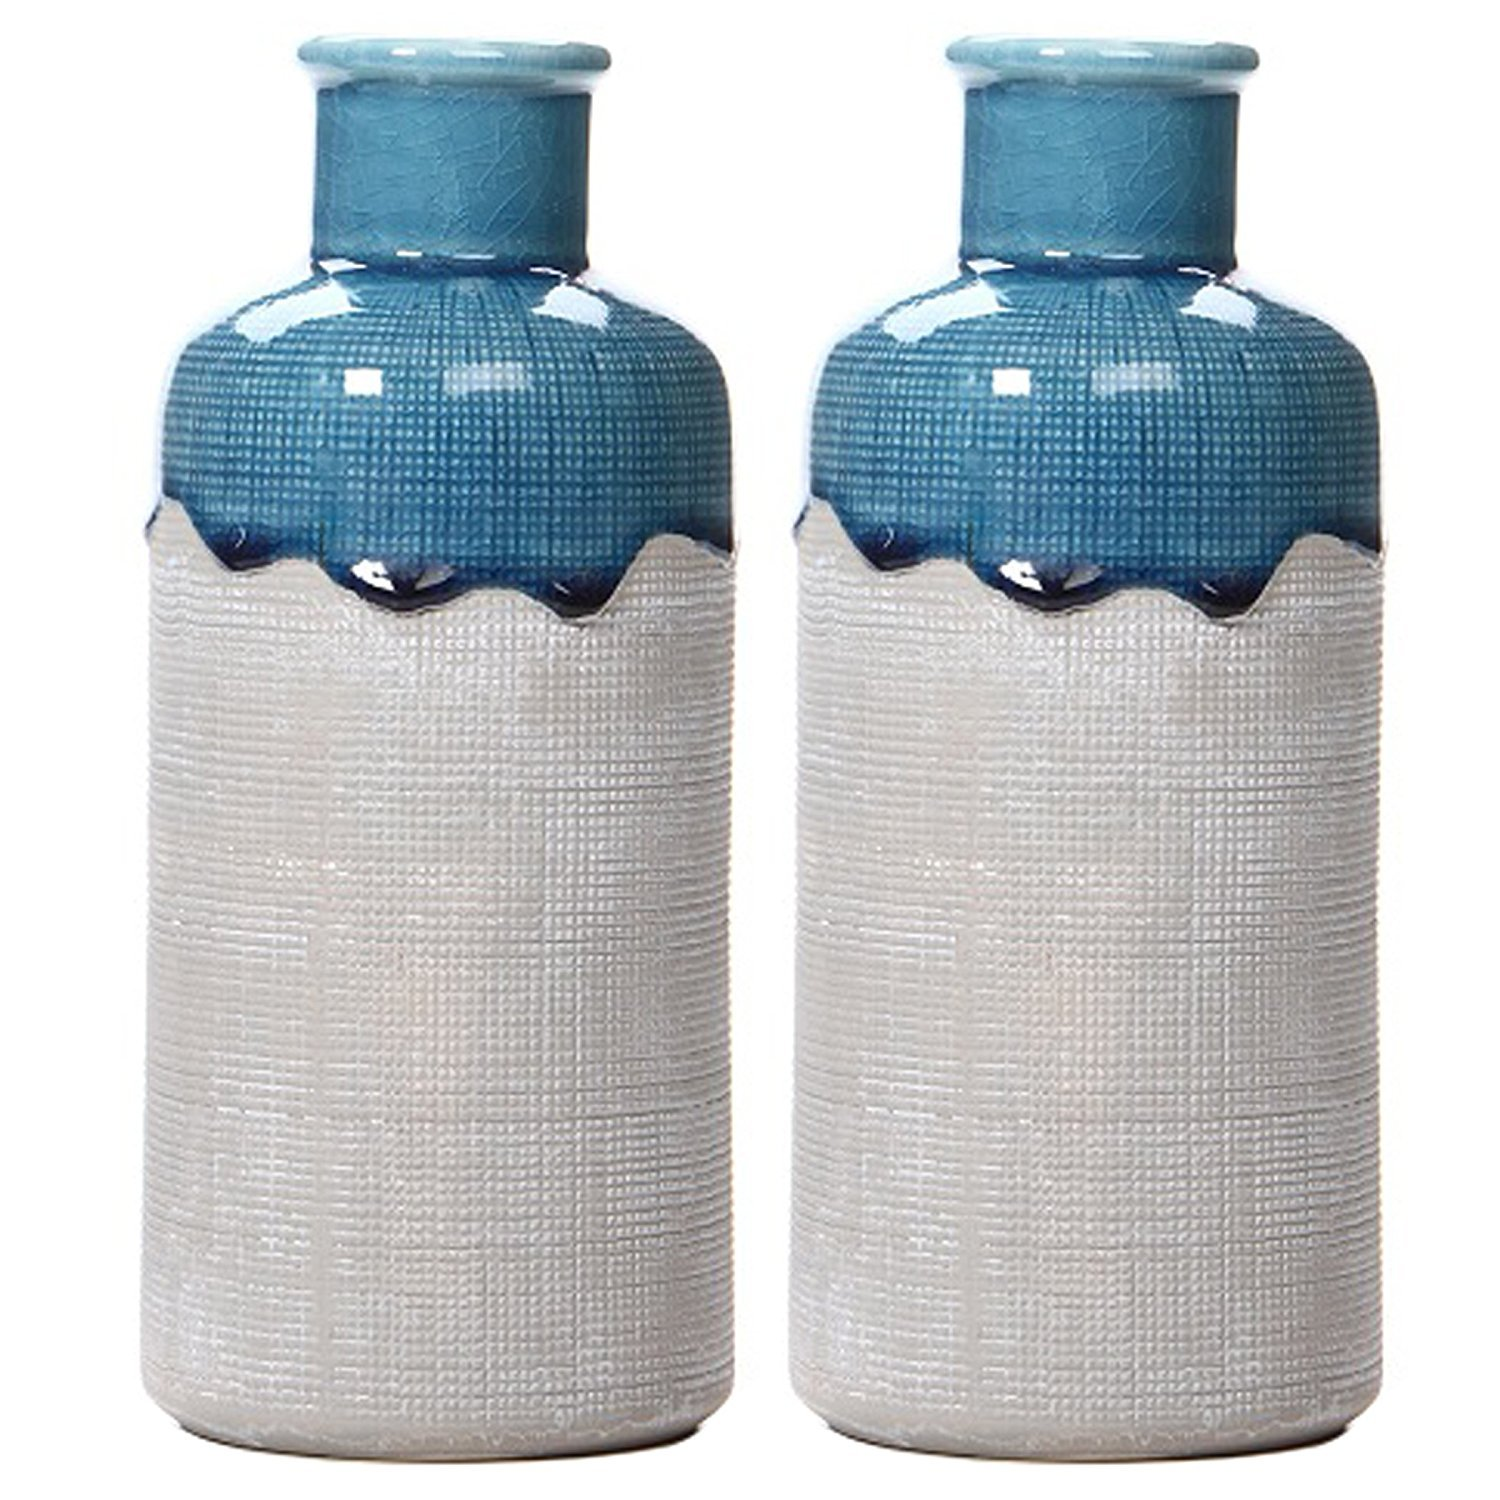 Hosley's Set of 2 Large Ceramic Vases - 9 High. Great Gift for Wedding, Spa, Aromatherapy, reiki HG Global H64483WAC